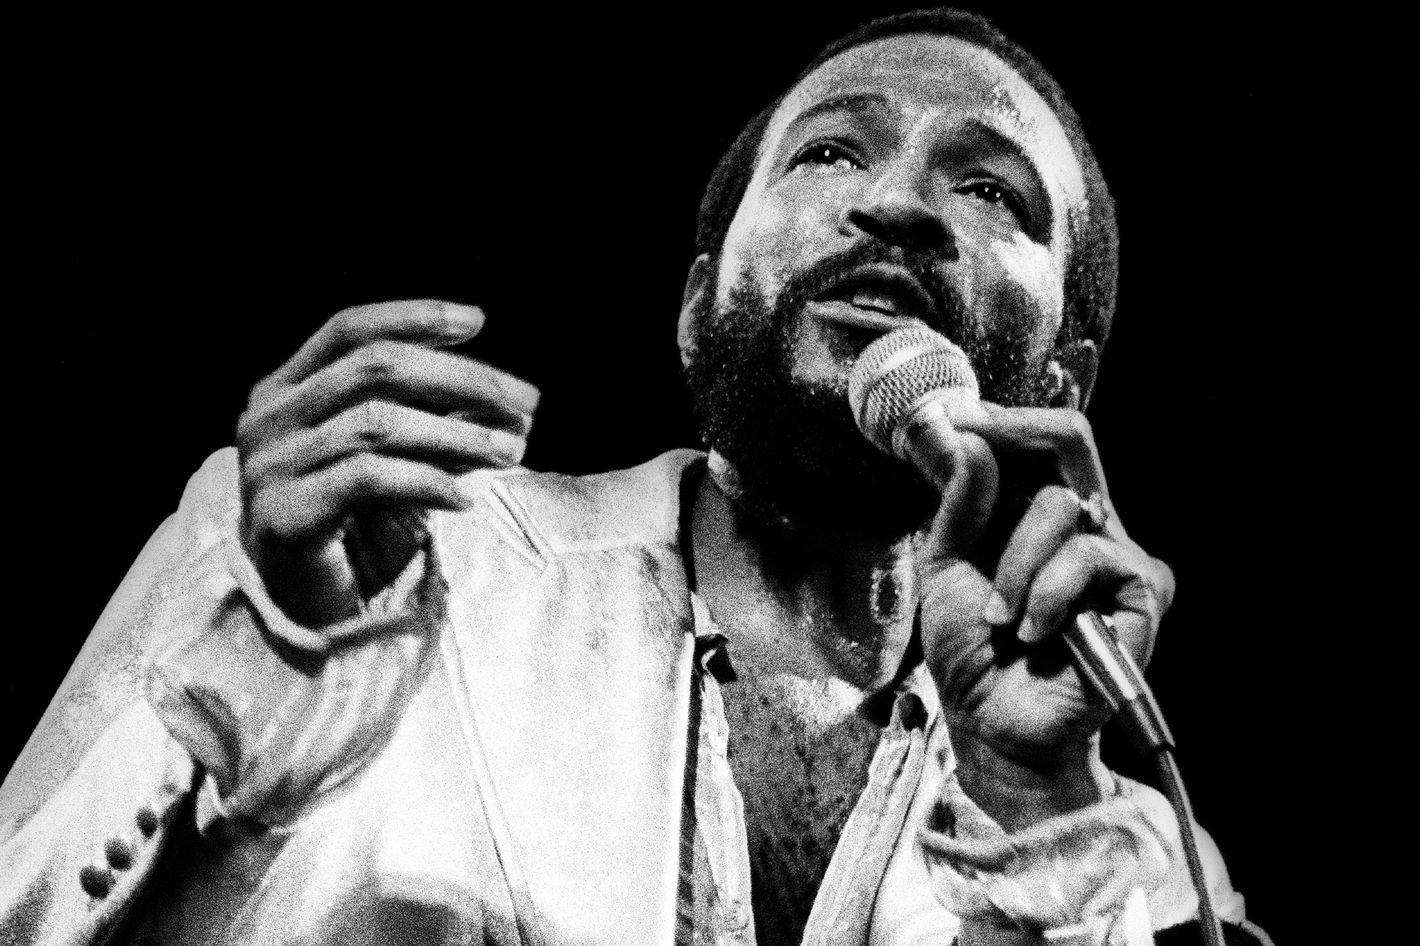 Jamie Foxx Is Making an Authorized Limited Series About Marvin Gaye